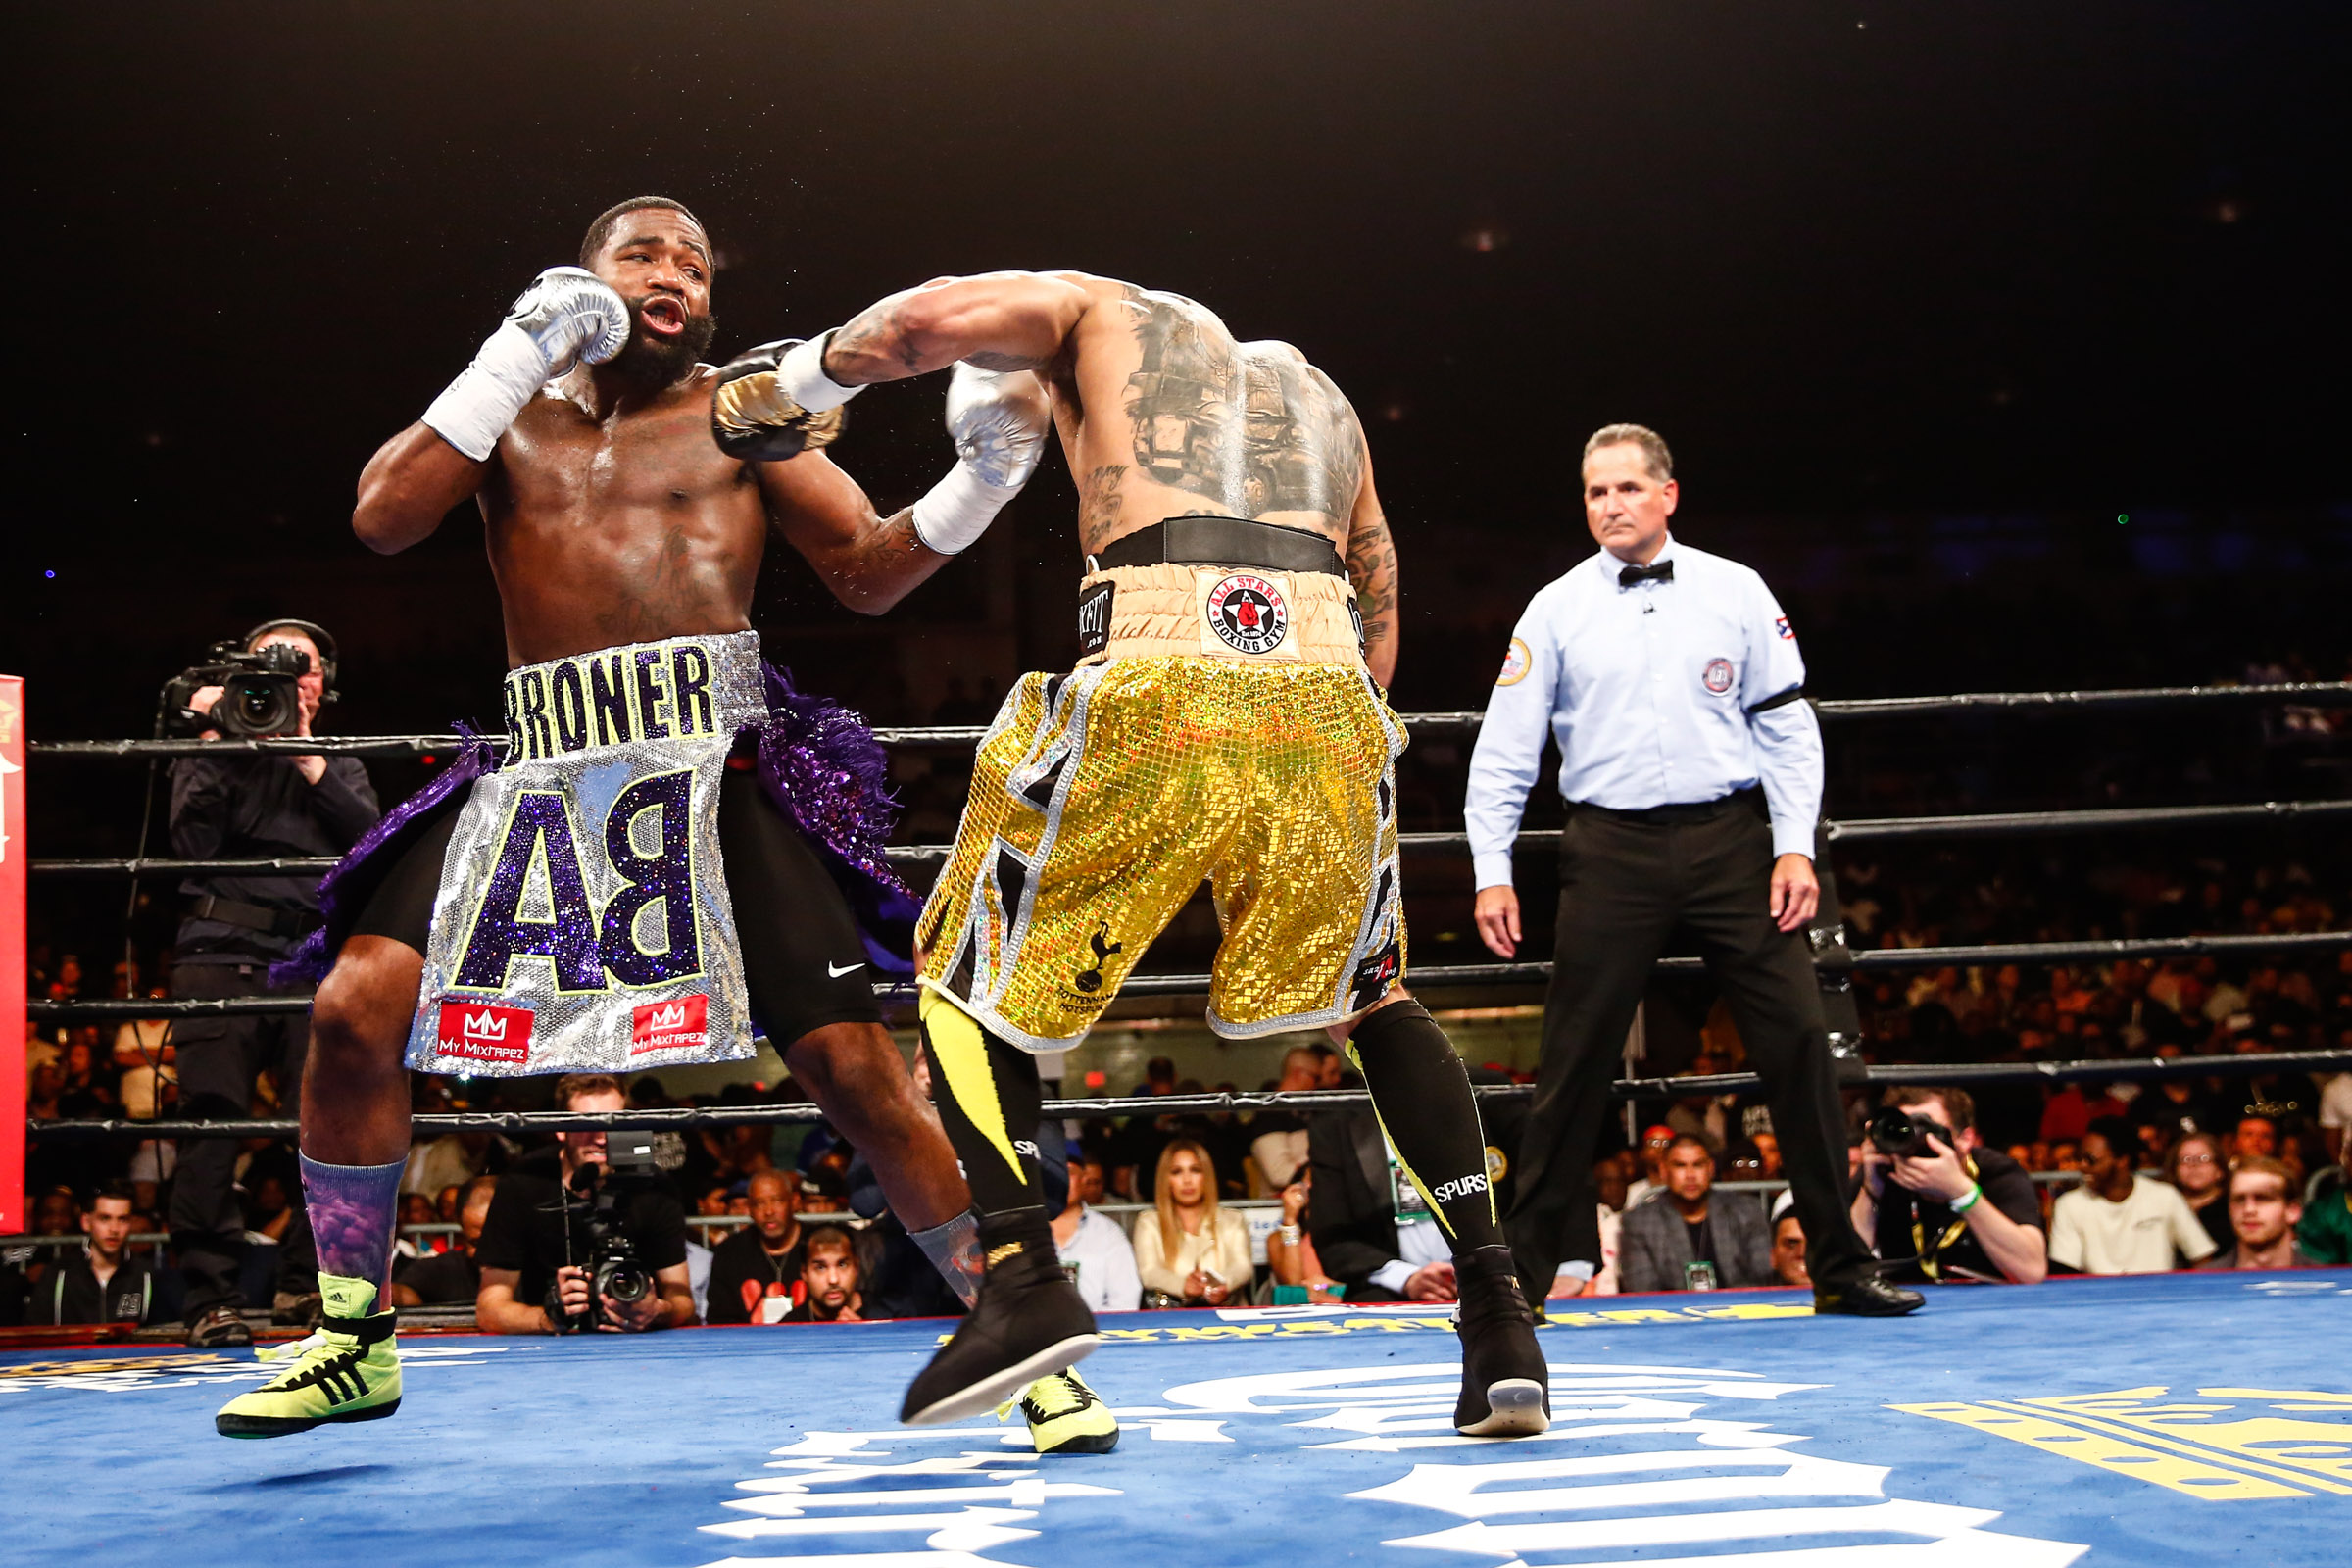 LR_FIGHT NIGHT-BRONER vs THEOPHANE-04012016-7638.jpg